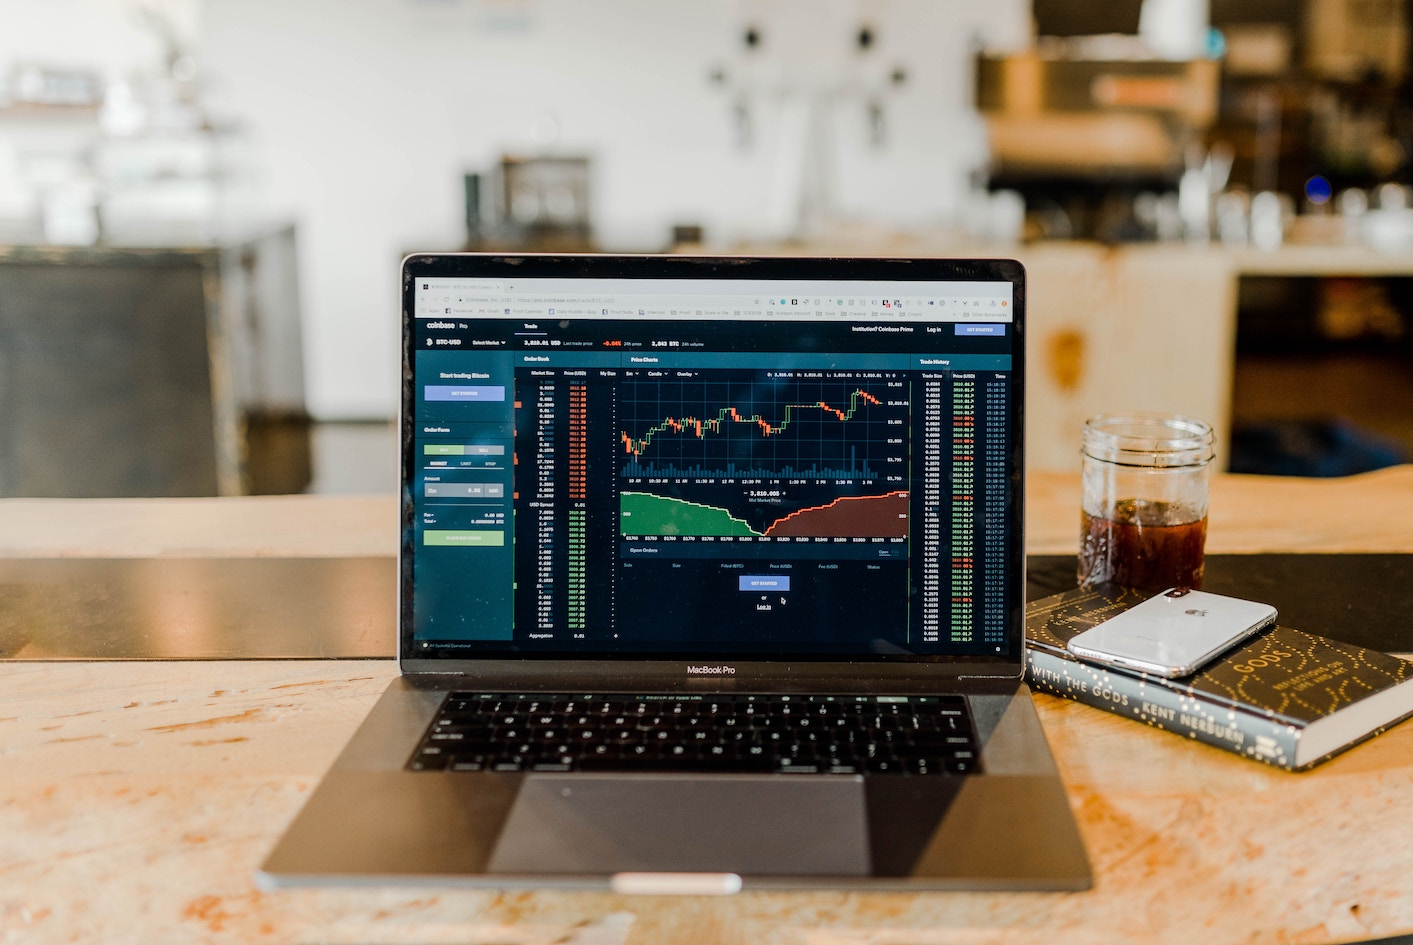 What are the best technical indicators to use in trading?